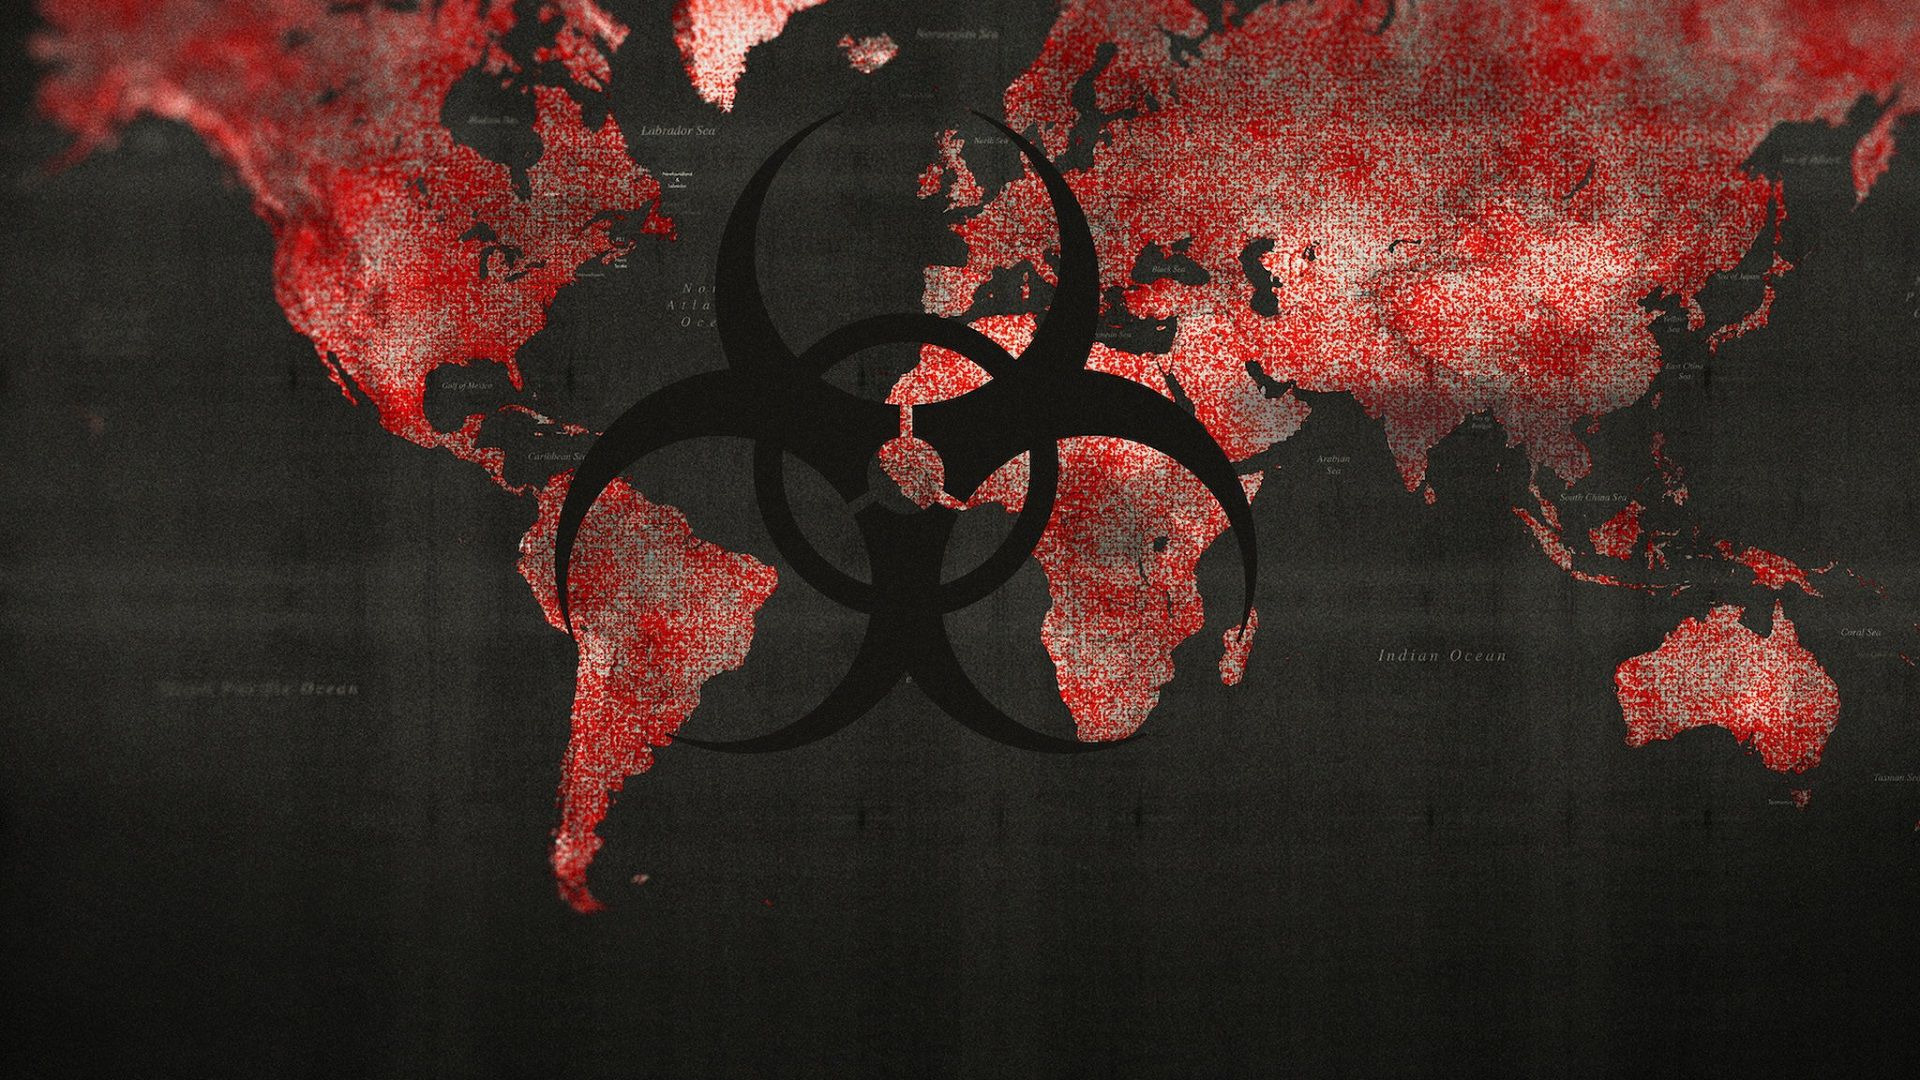 Show Pandemic: How to Prevent an Outbreak